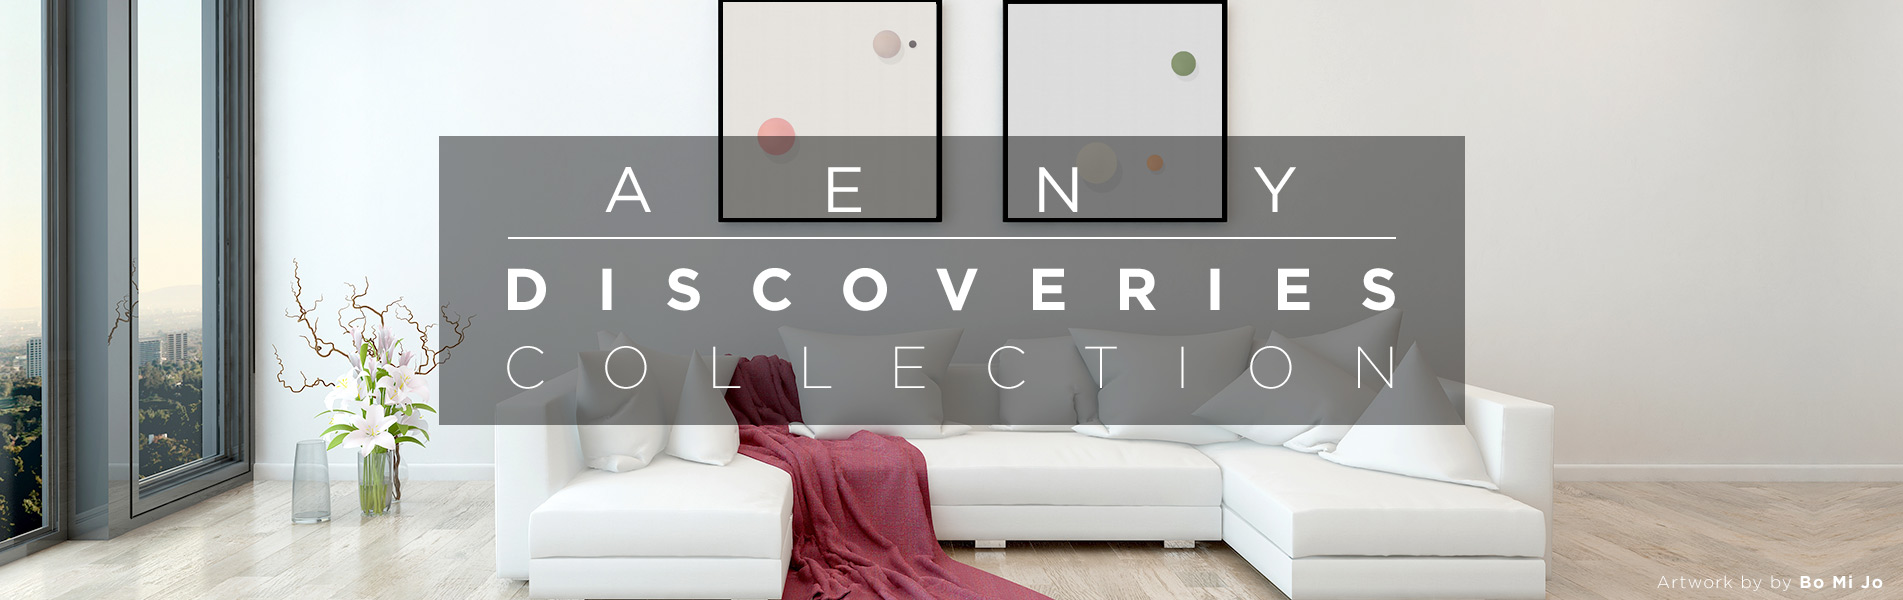 AENY Discoveries Collection